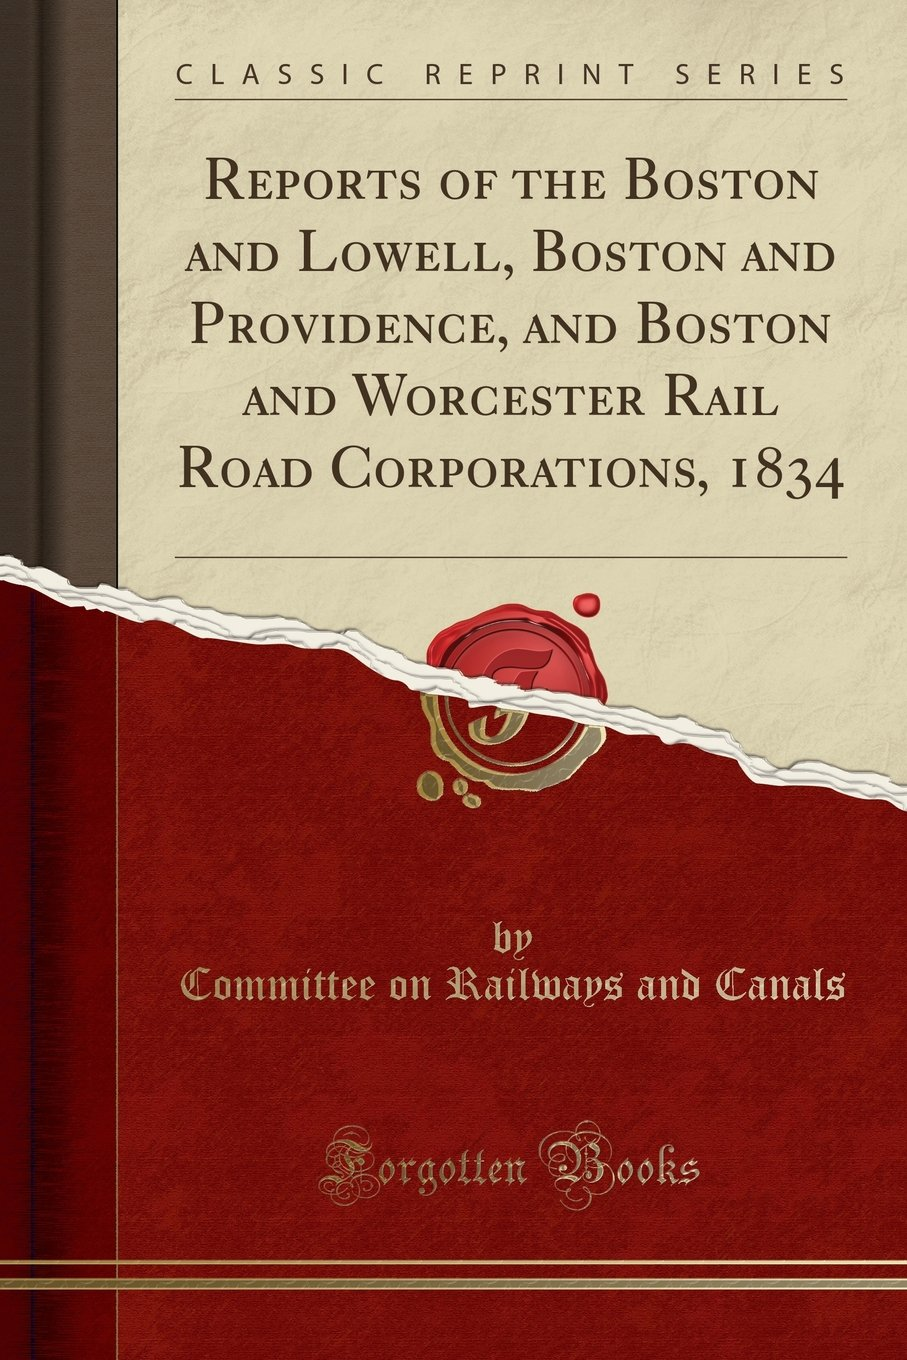 Reports of the Boston and Lowell, Boston and Providence, and Boston and Worcester Rail Road Corporations, 1834 (Classic Reprint) PDF